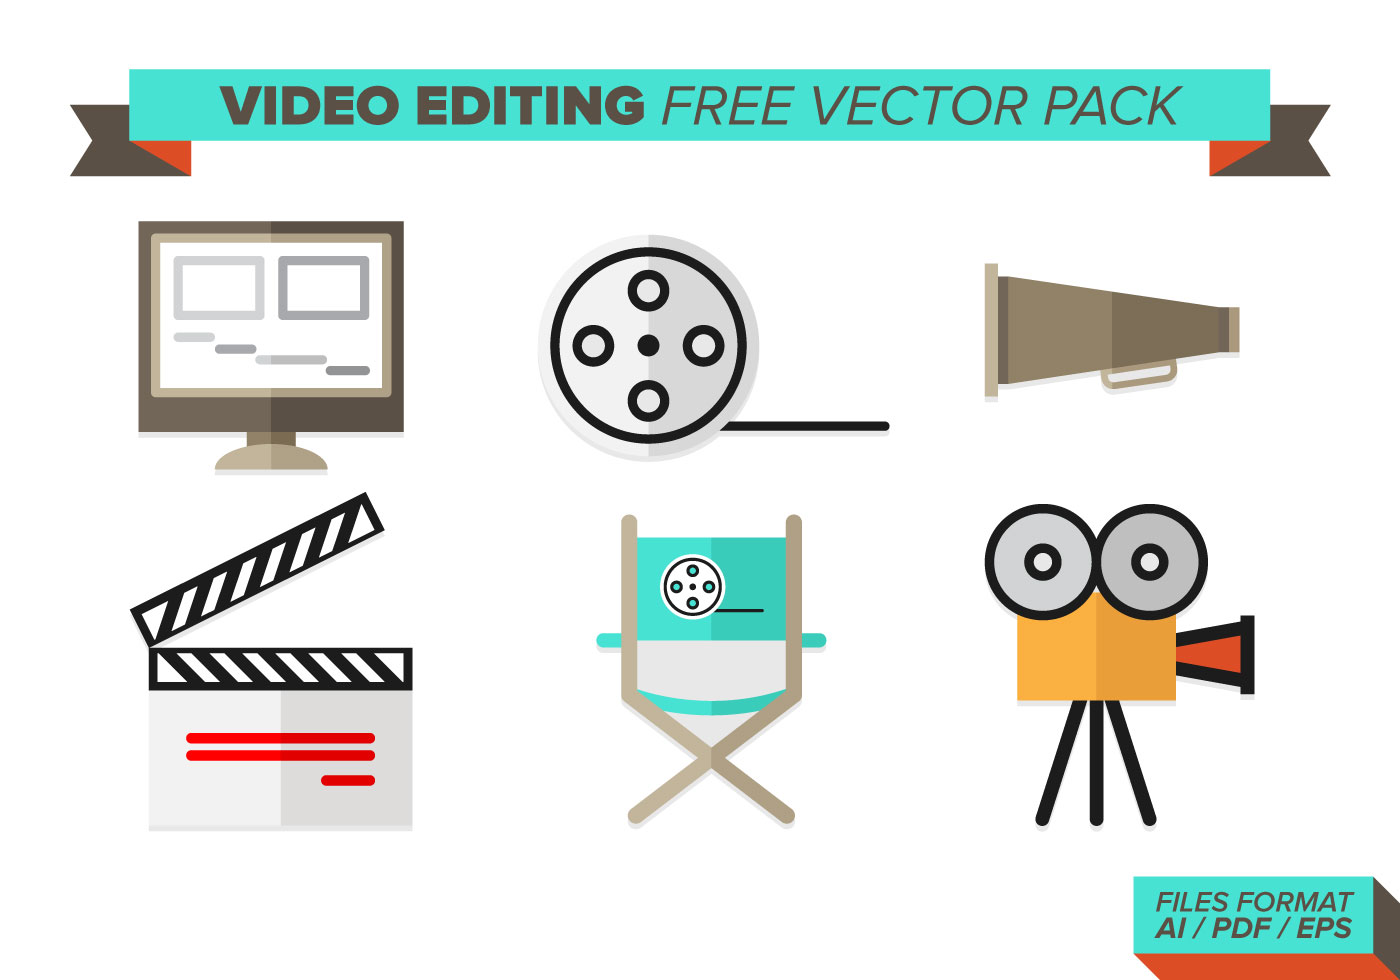 Video Editing Free Vector Pack Download Free Vector Art